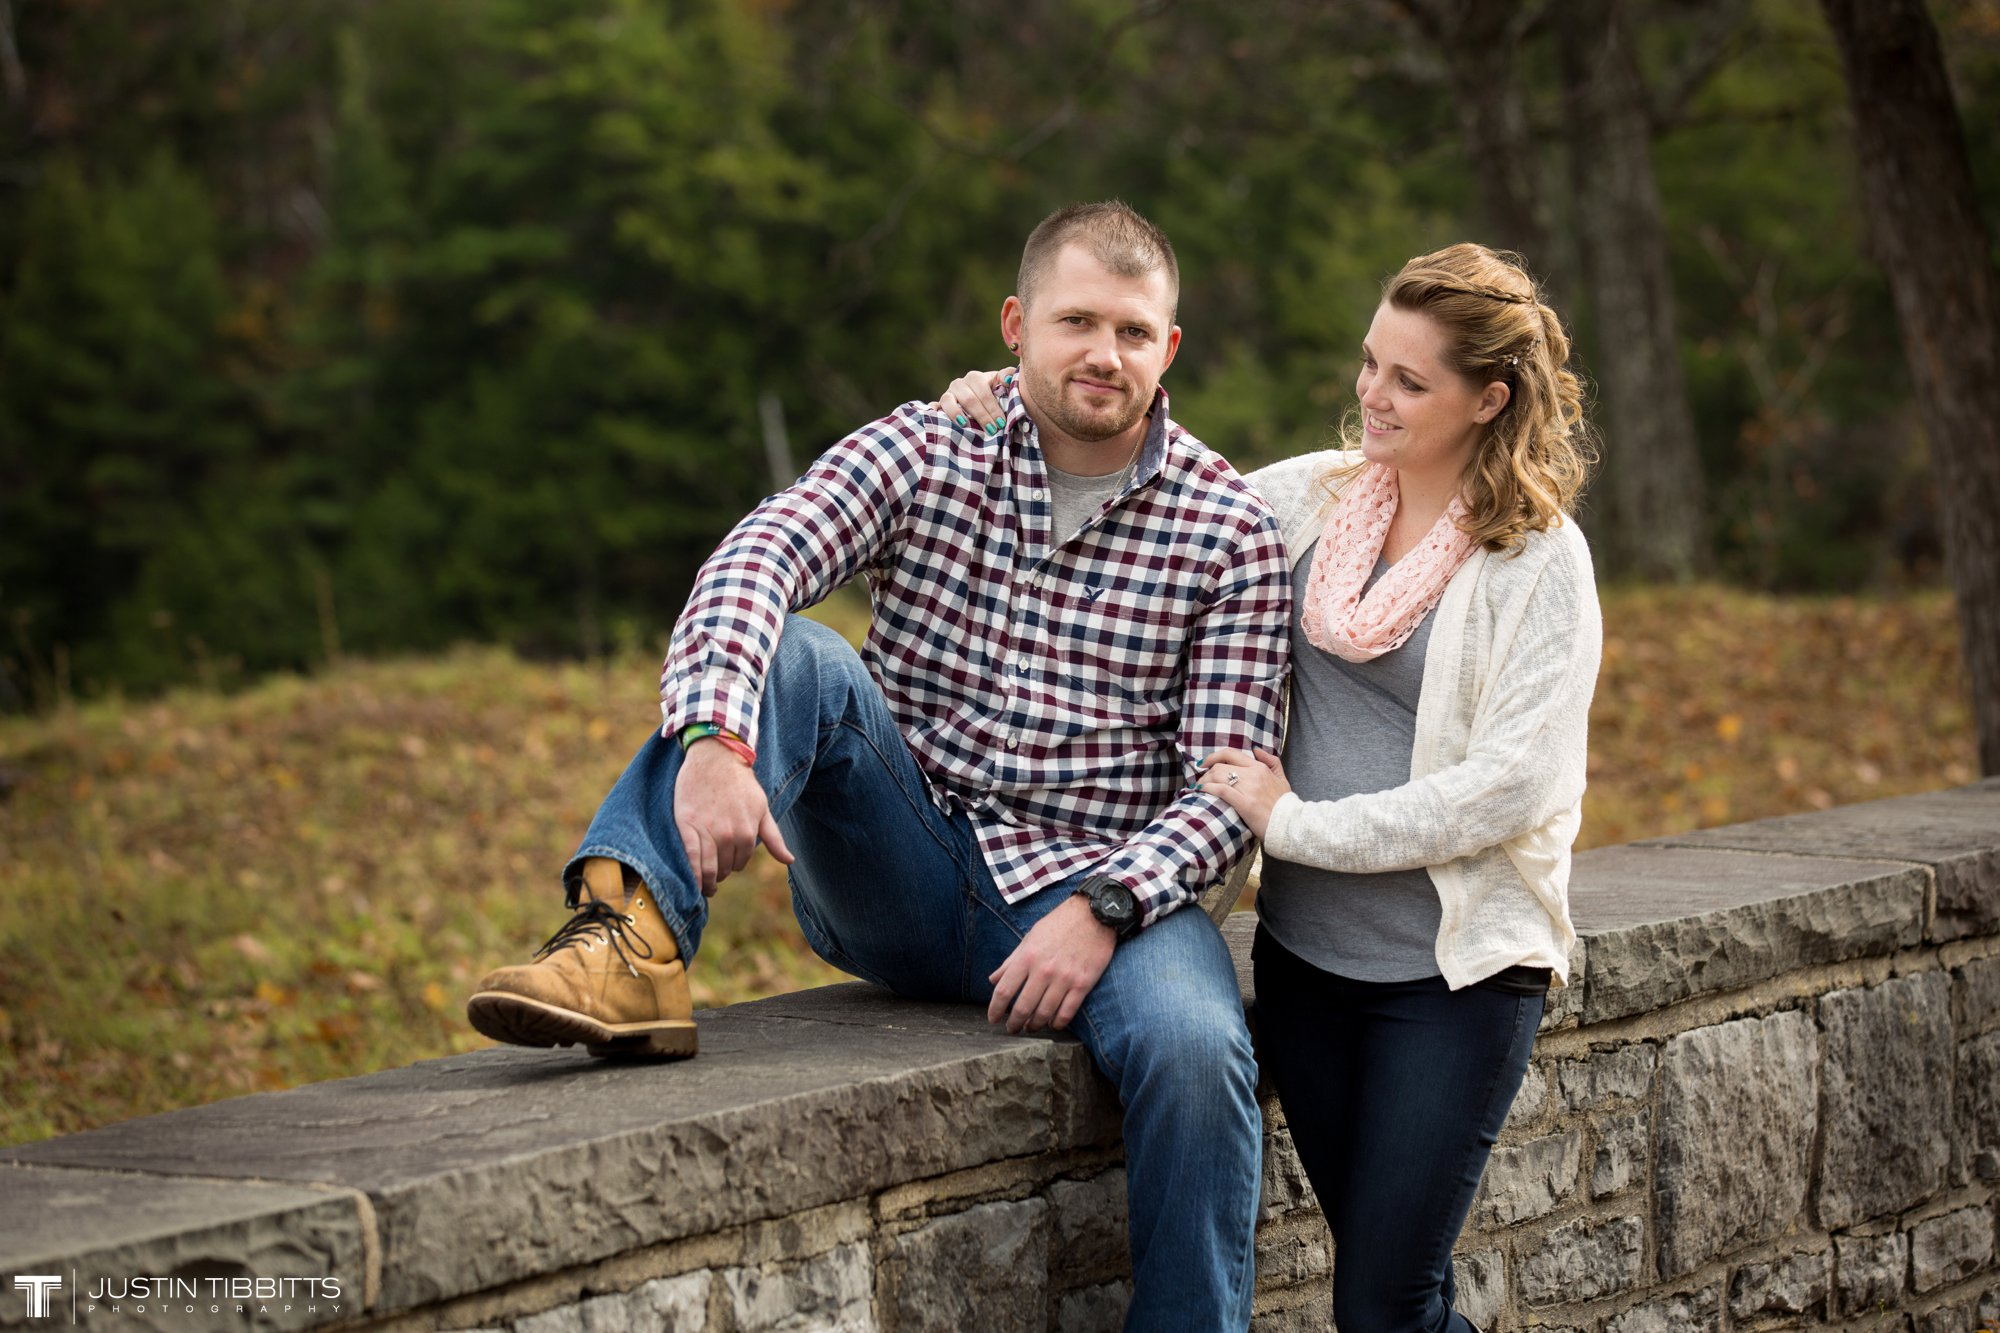 Justin Tibbitts Photography Ashlee and Steves Thatcher Park, New York Engagement Shoot-3